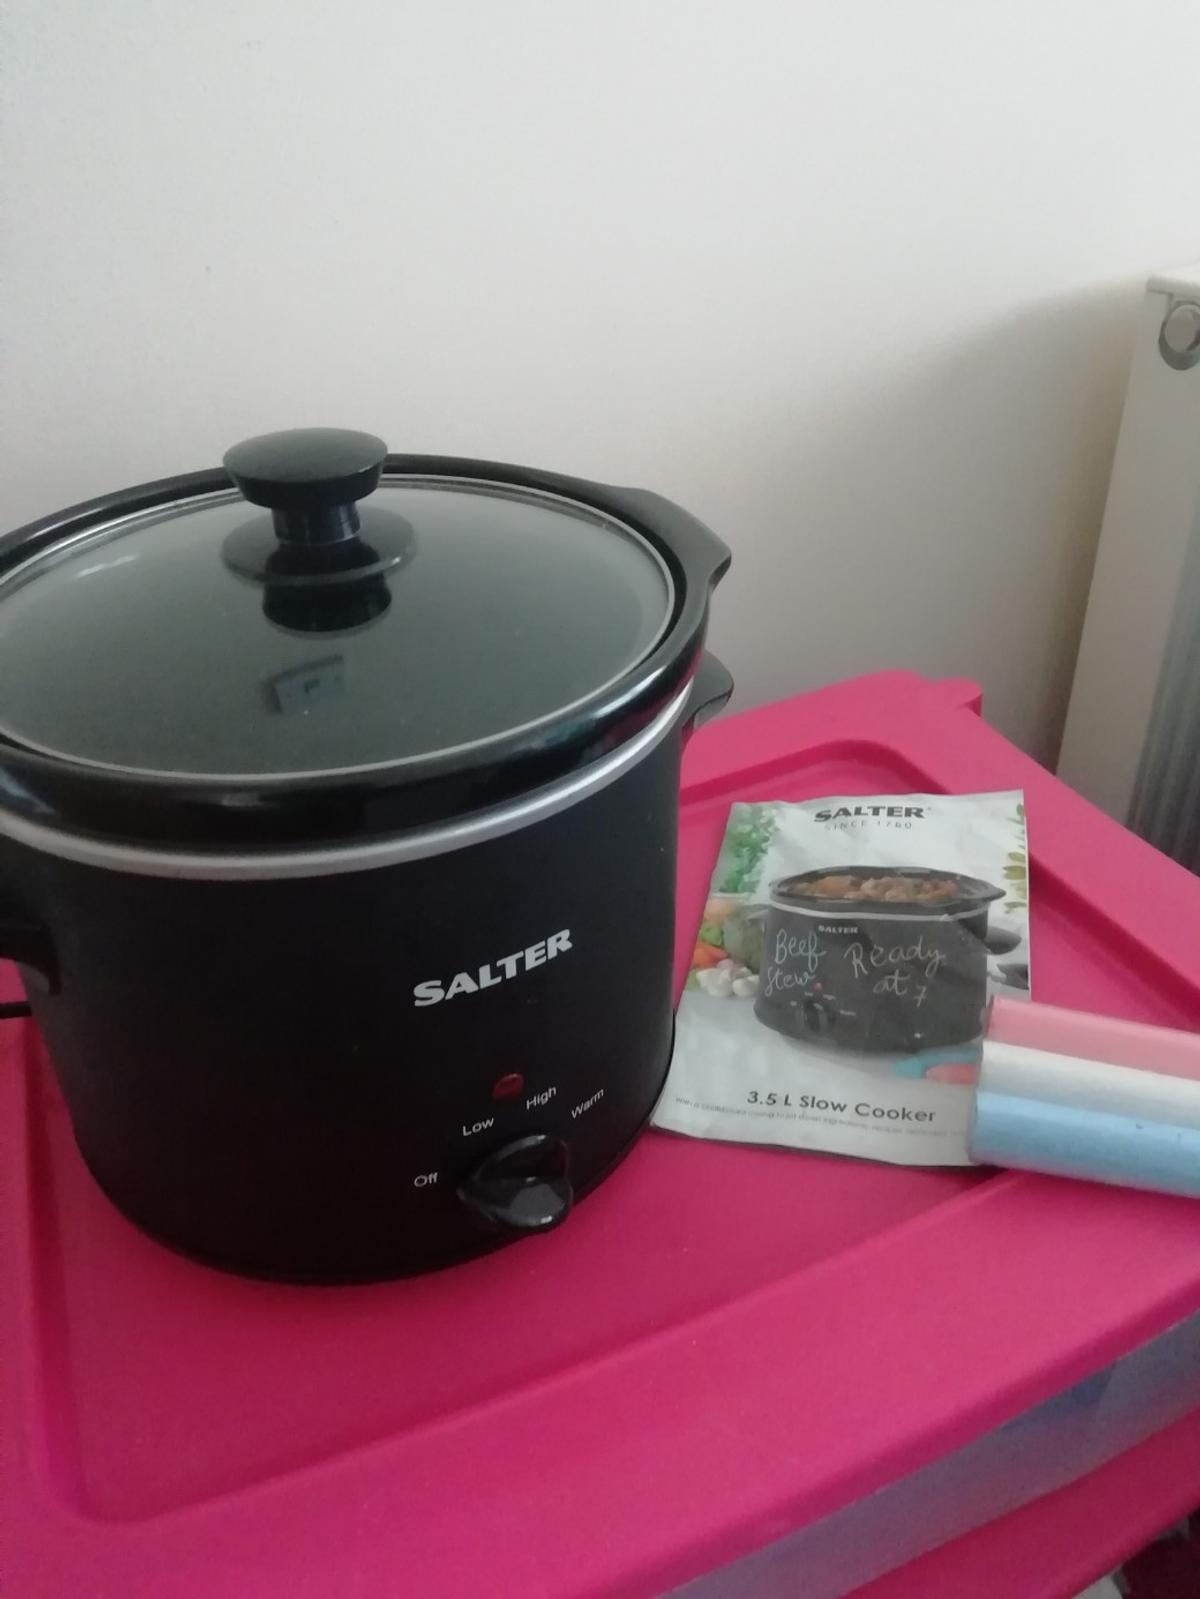 """*only used once*  immaculate condition. 3.5L slow cooker by SALTER. The Matt finish allows the outside to be written in in chalk (provided). Comes with instruction manual. I only ever used it once as I prefer to cook """"in the moment"""" and not leave something cooking all day. Worked brilliantly for the time I did use it!  Pet, smoke and virus free home! Selling due to"""